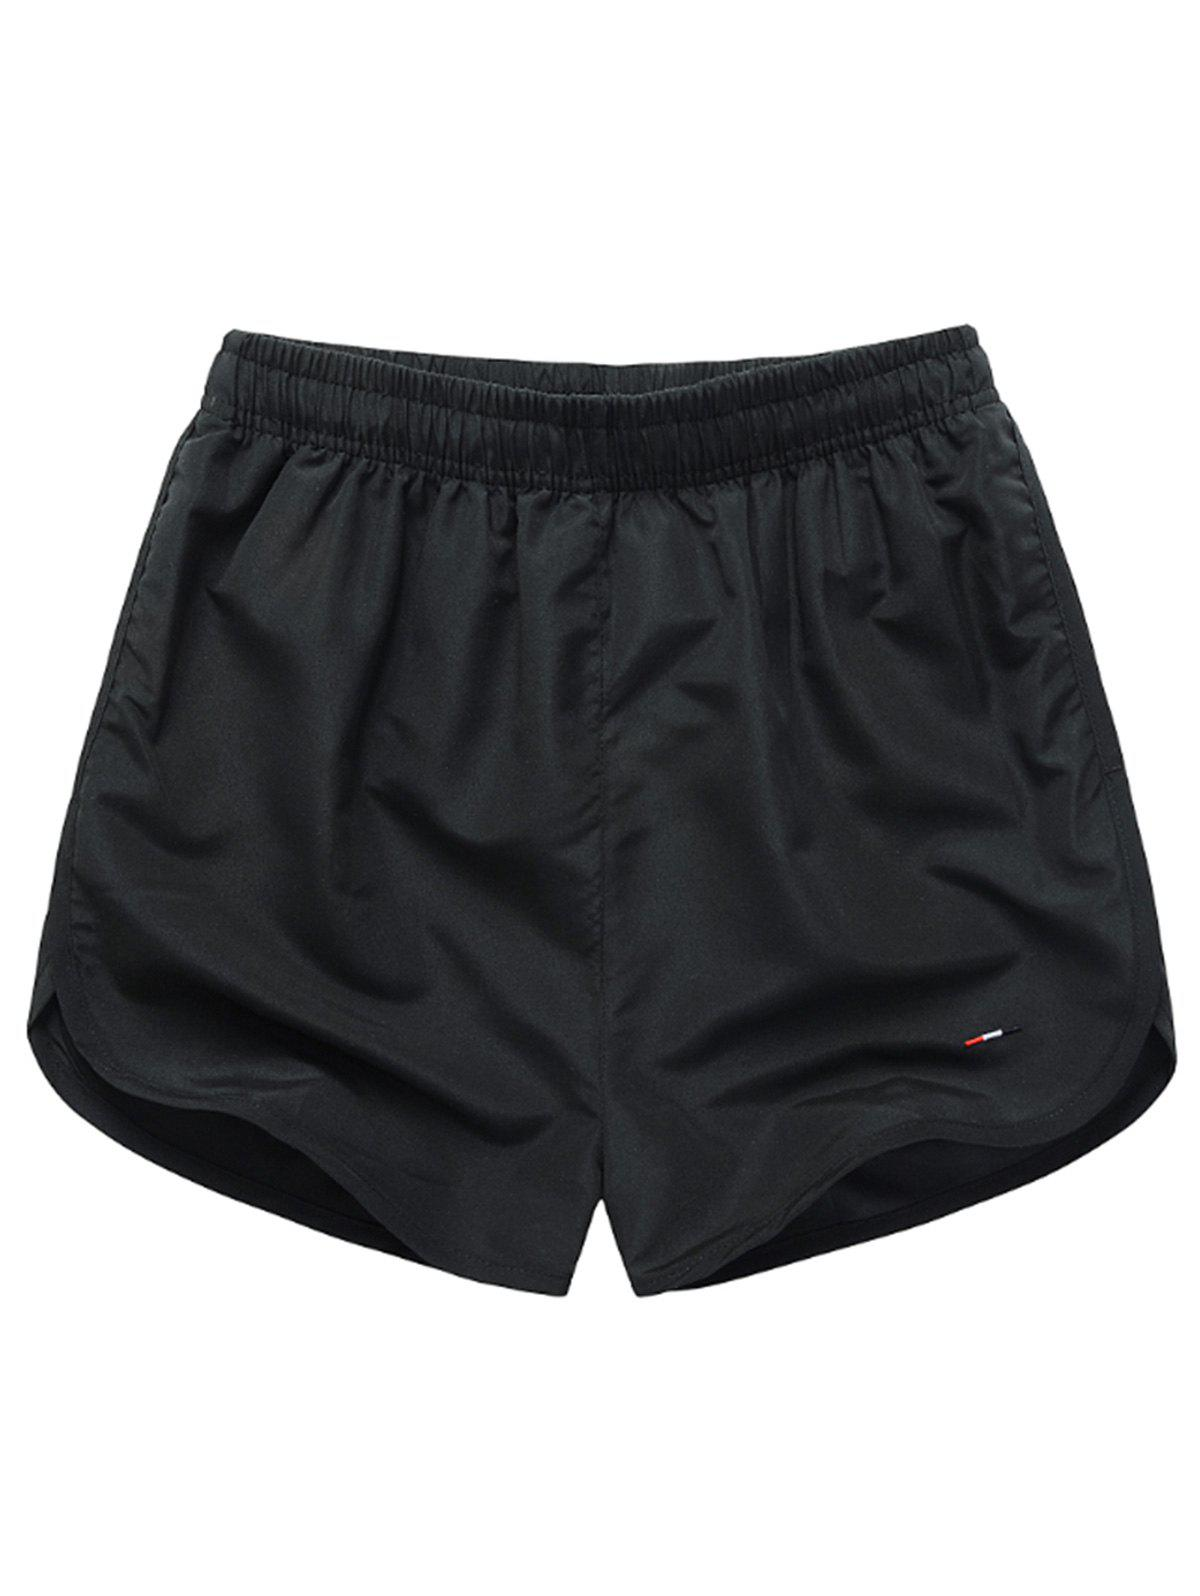 Mesh Lined Dolphin Hem Beach Shorts - BLACK 2XL